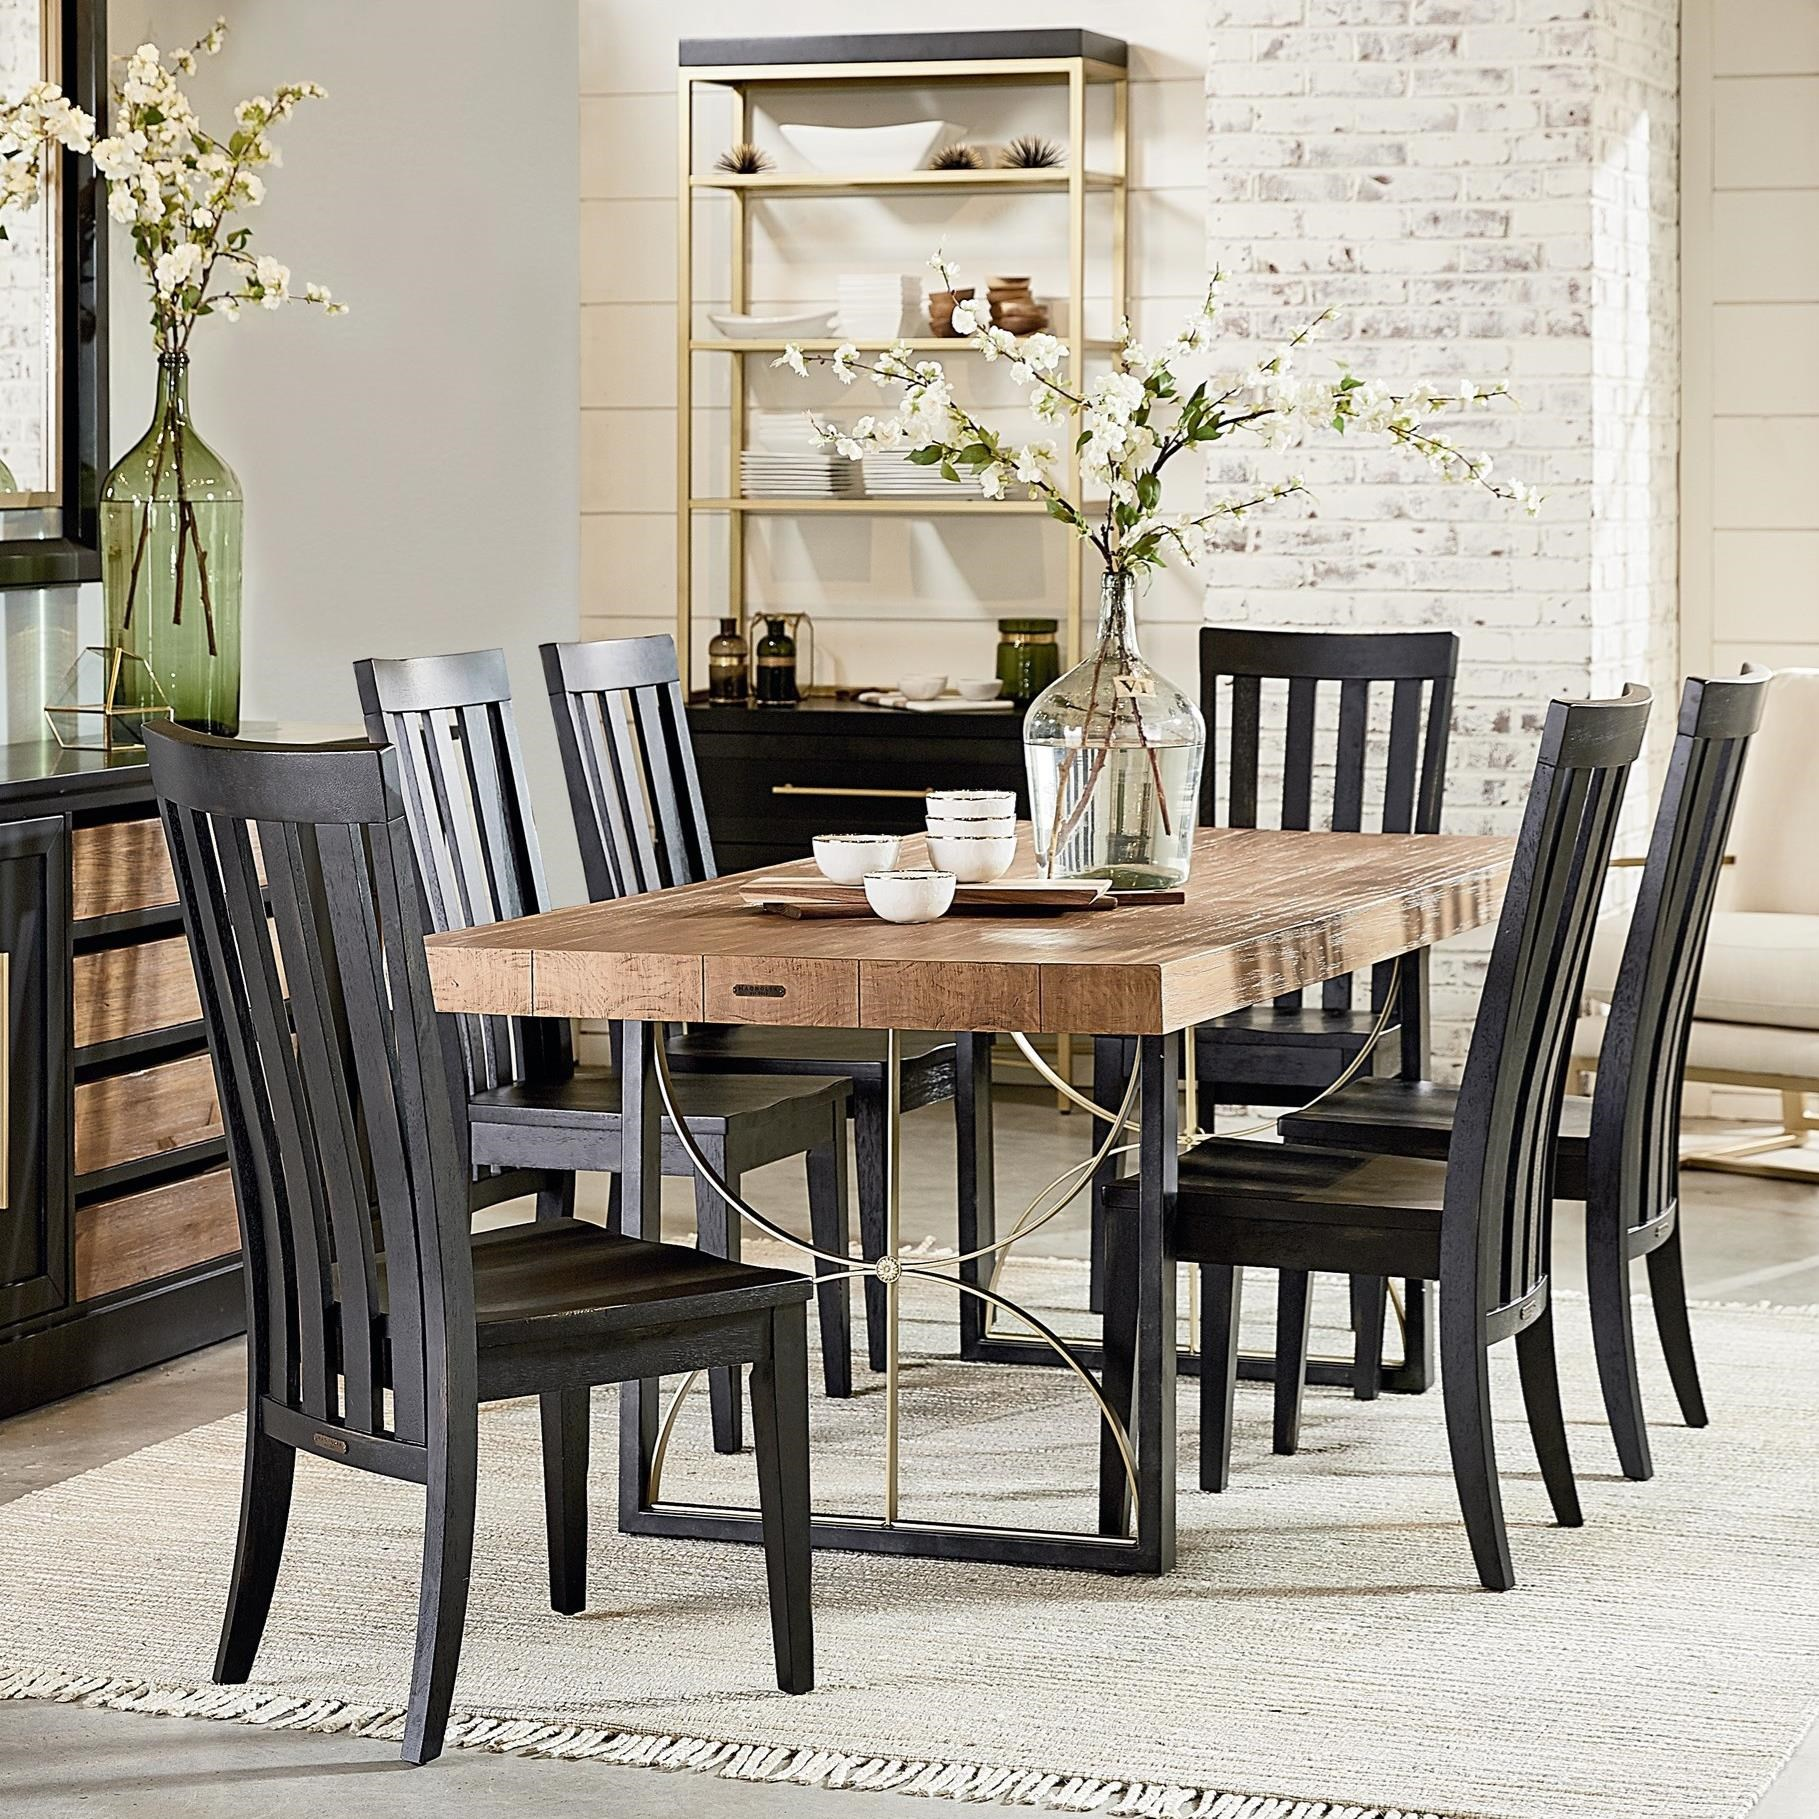 6 39 Contemporary Table Chair Set By Magnolia Home By Joanna Gaines Wolf And Gardiner Wolf